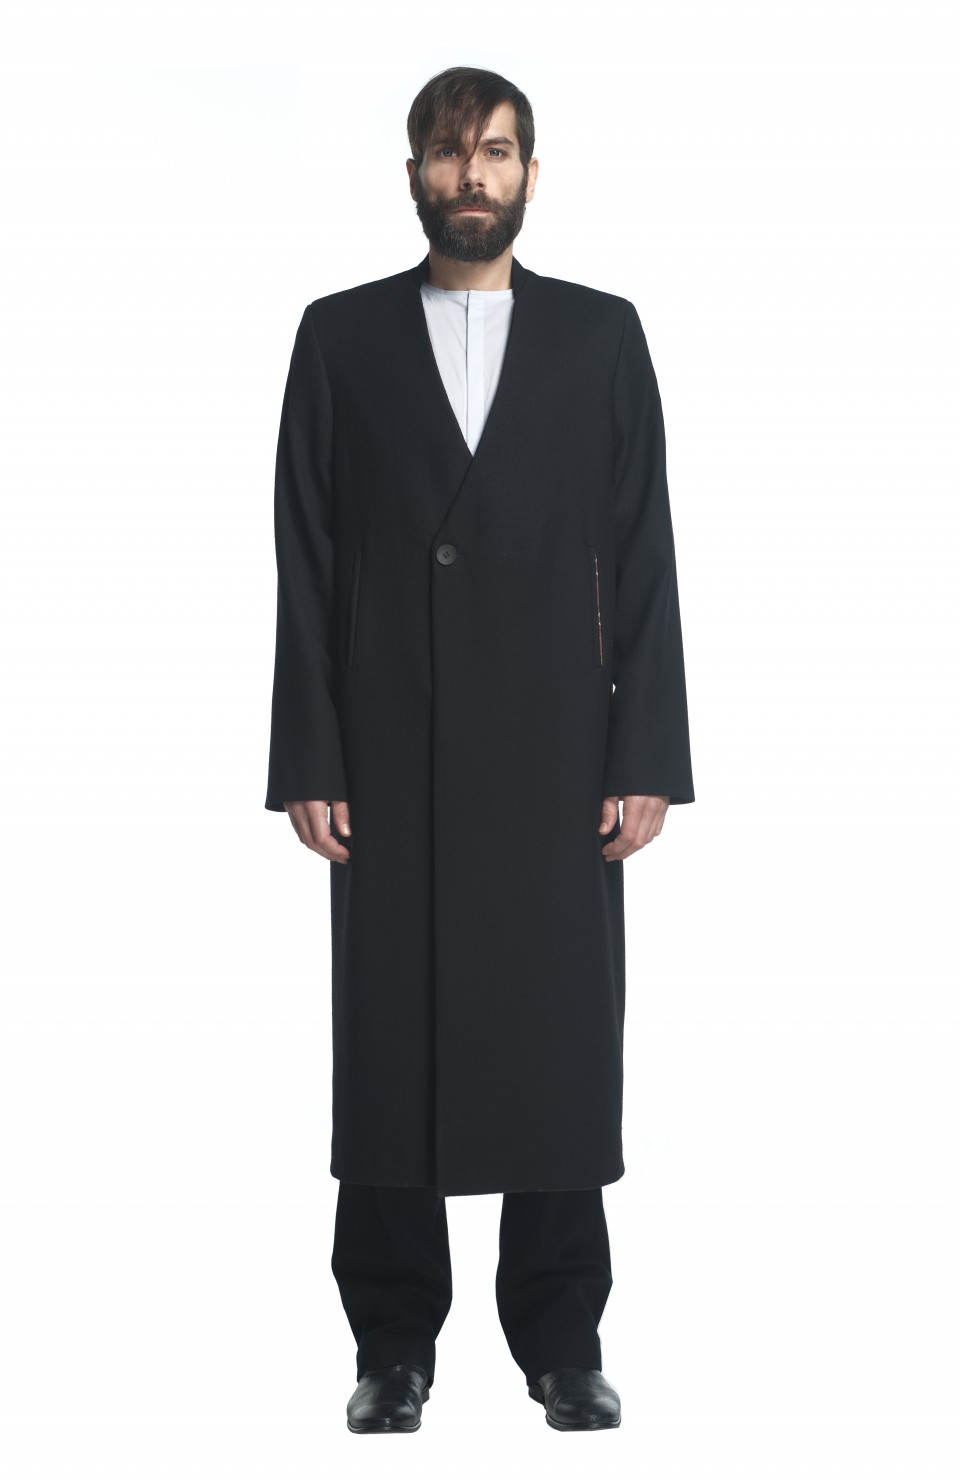 V neck black coat